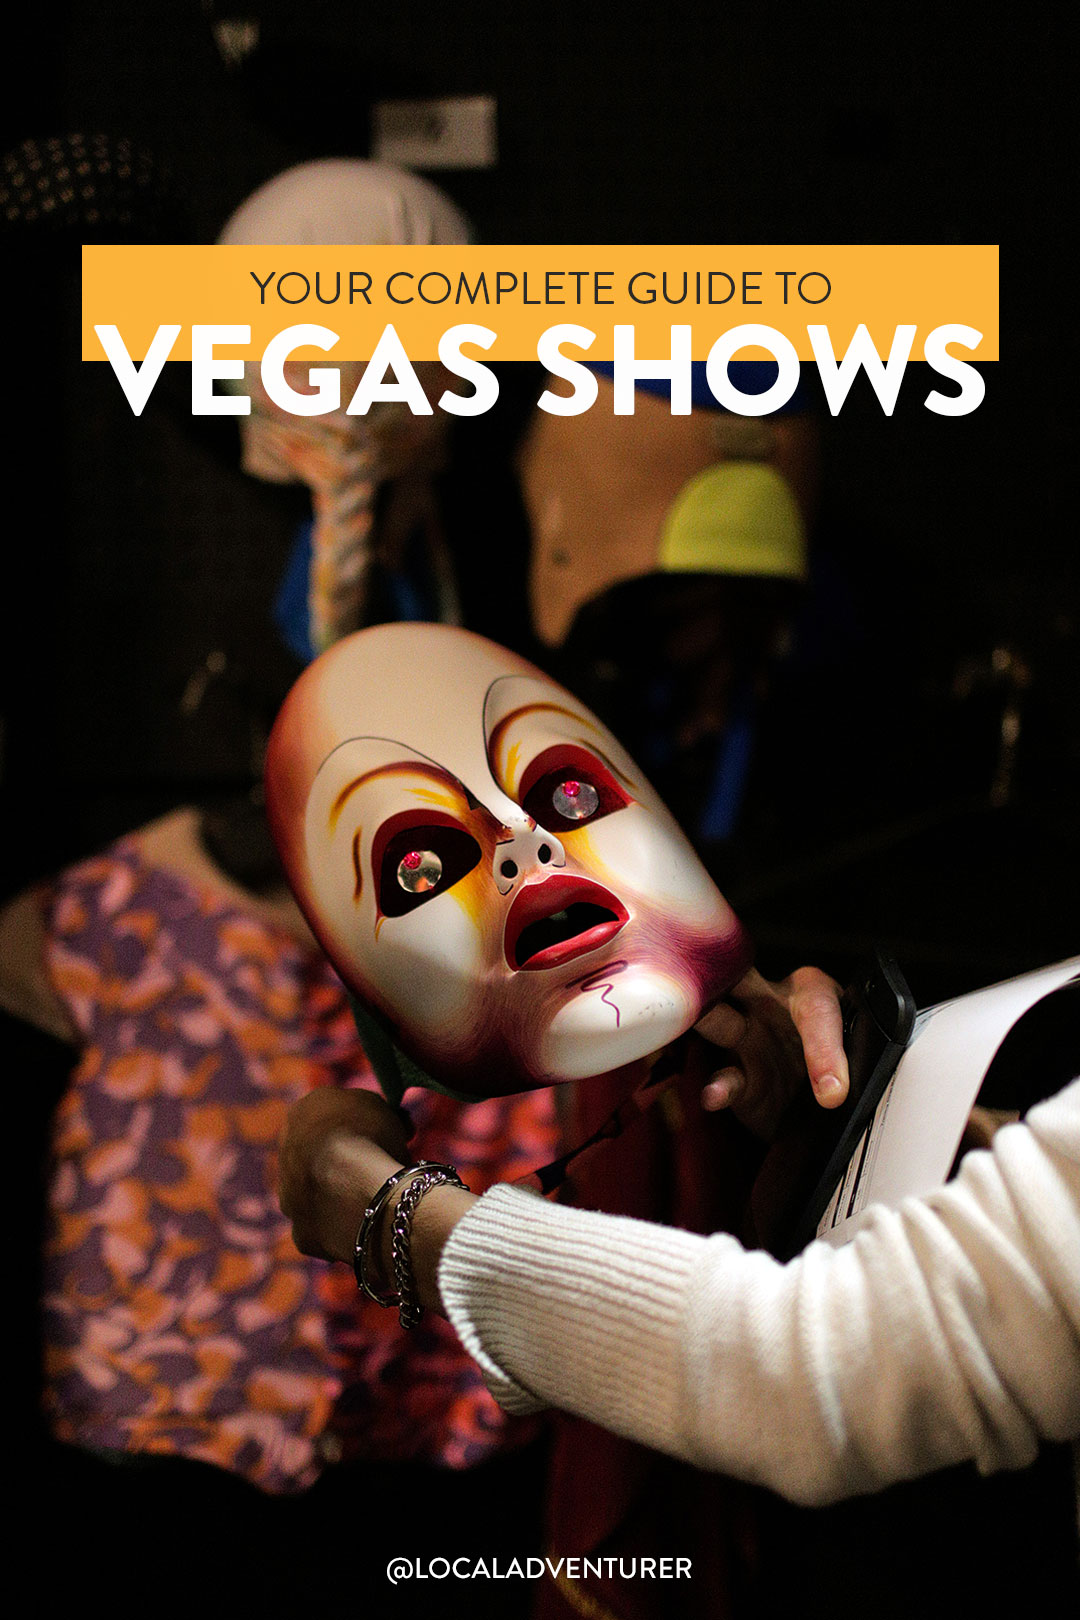 Your Complete Guide to the Best Las Vegas Shows